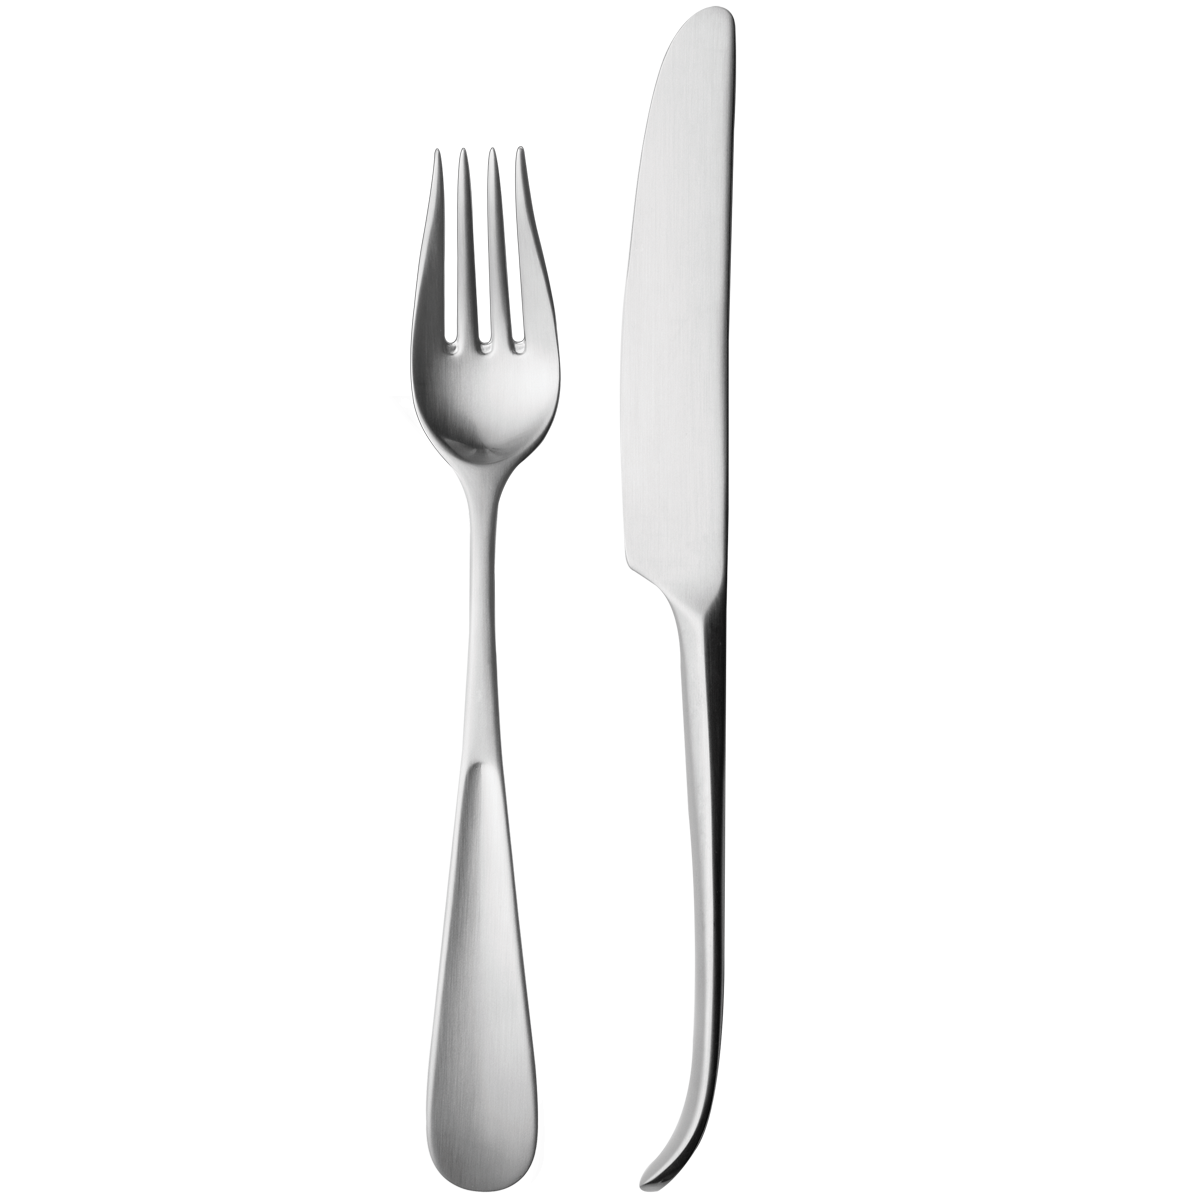 PNG Fork And Knife Pic image #3658